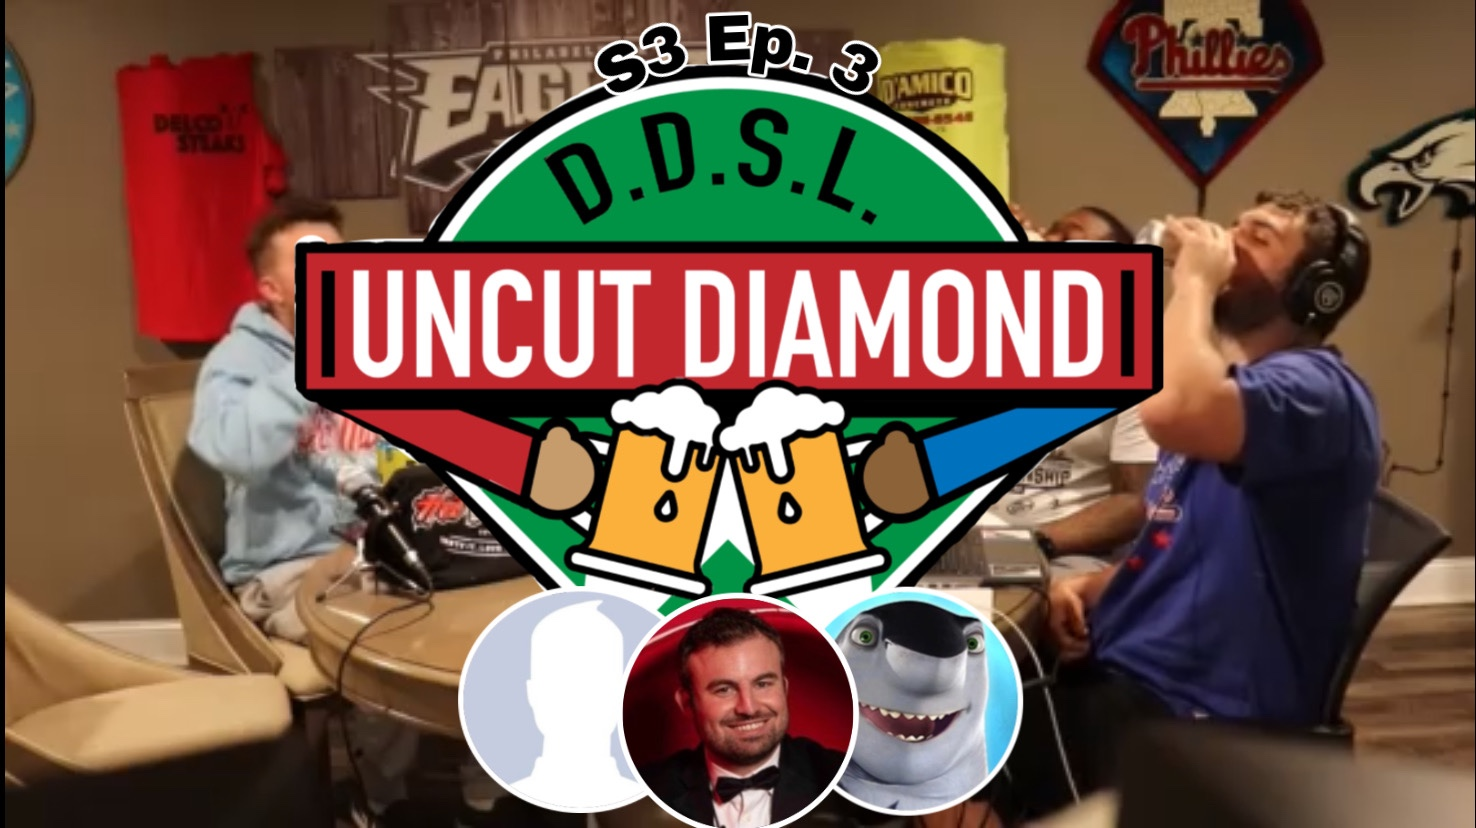 Uncut Diamond, The Delco Softball League Podcast, is better than Joe Rogan.